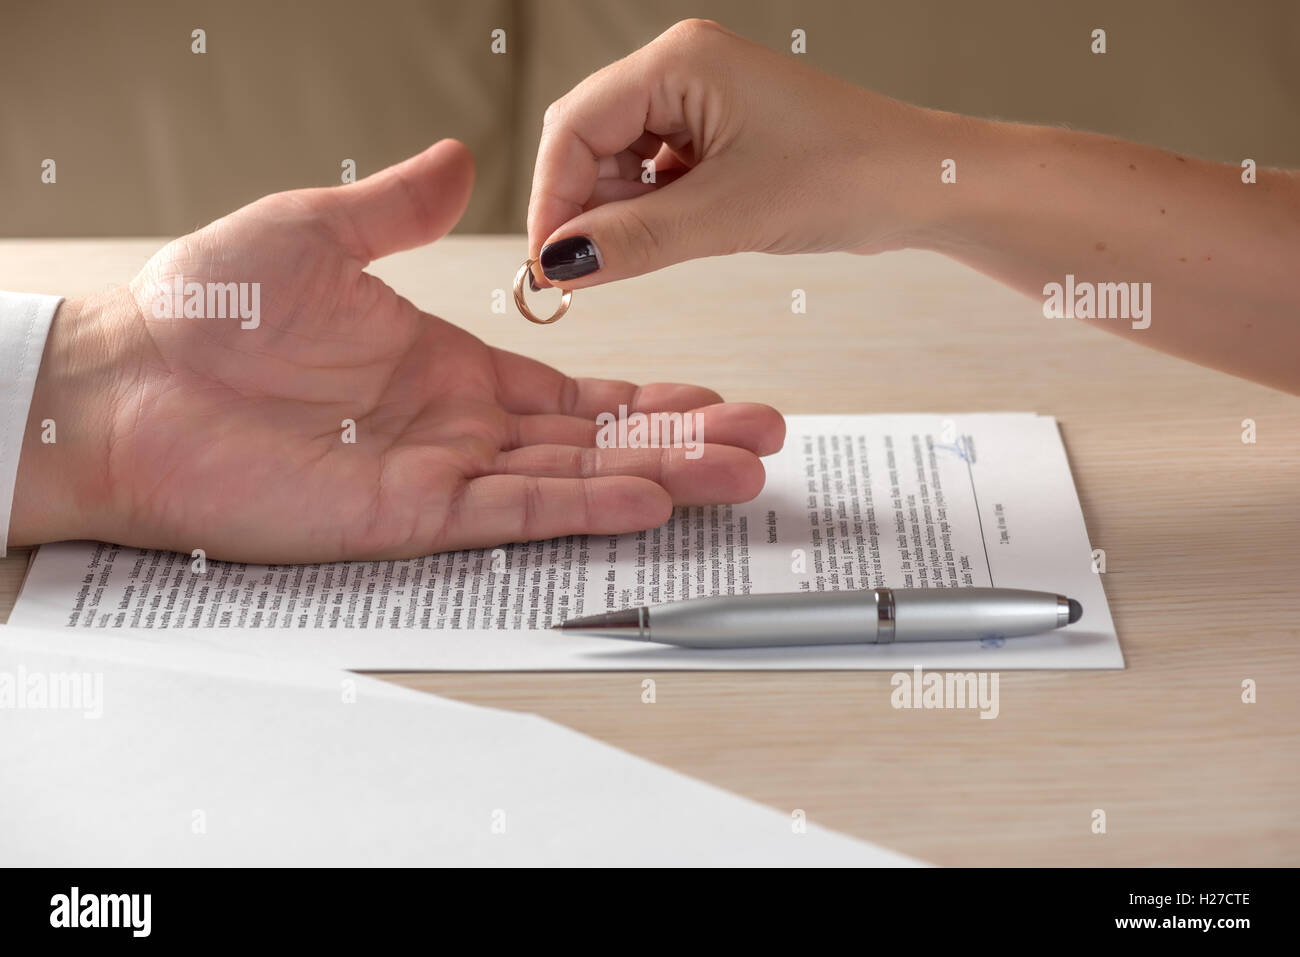 Wife and husband signing divorce documents, woman returning wedding ring - Stock Image